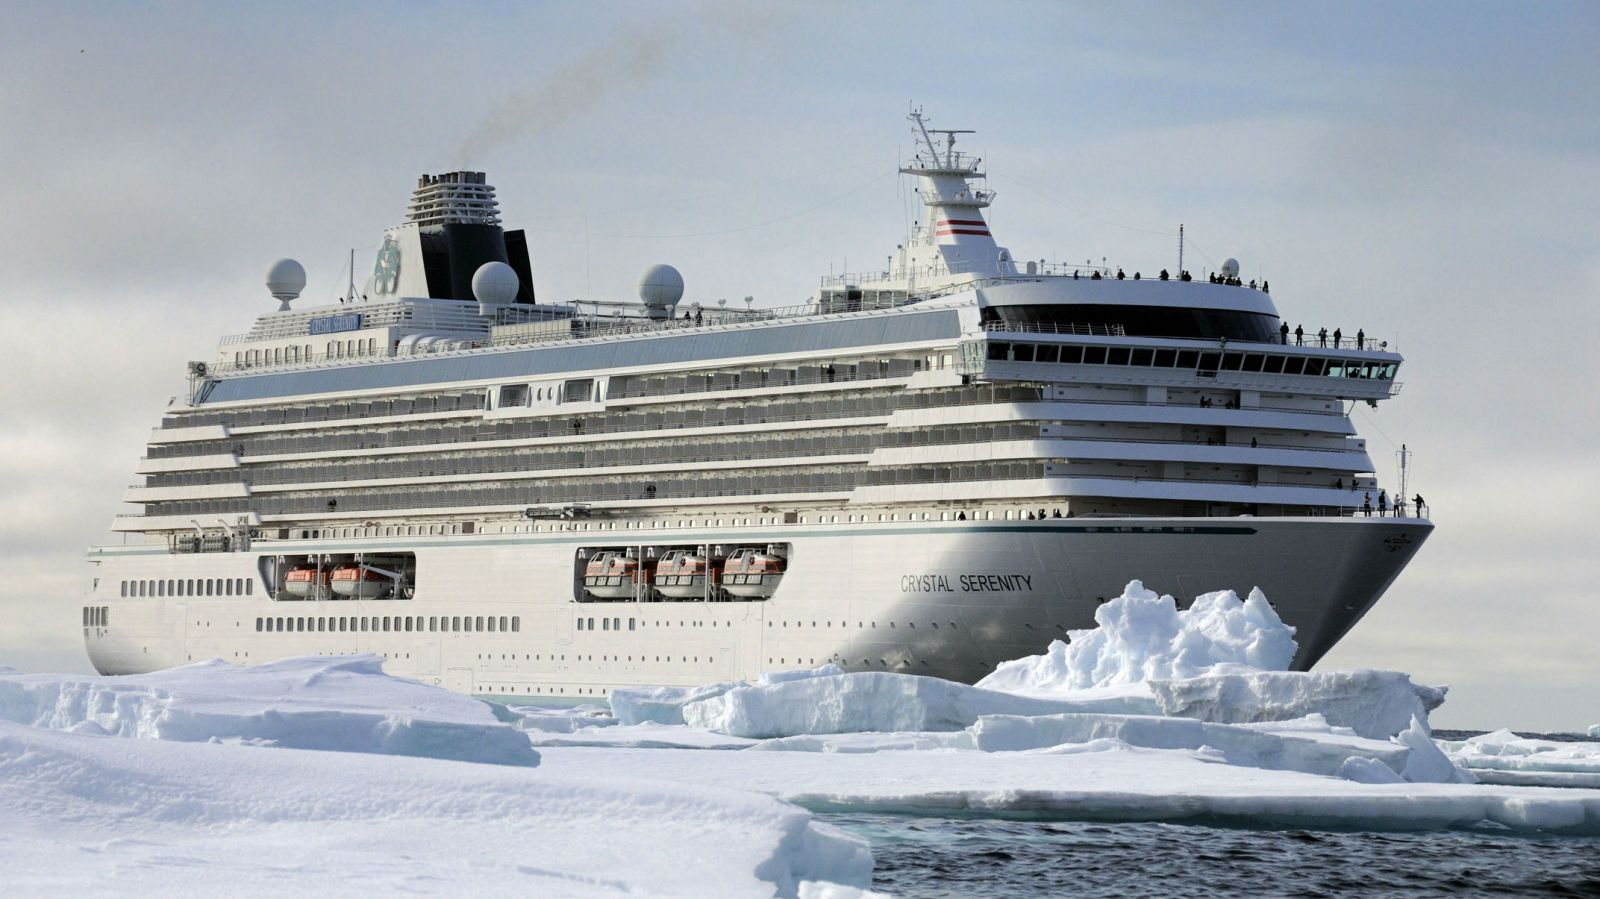 Uncharted Waters Cruise Ships Sail The Arctic